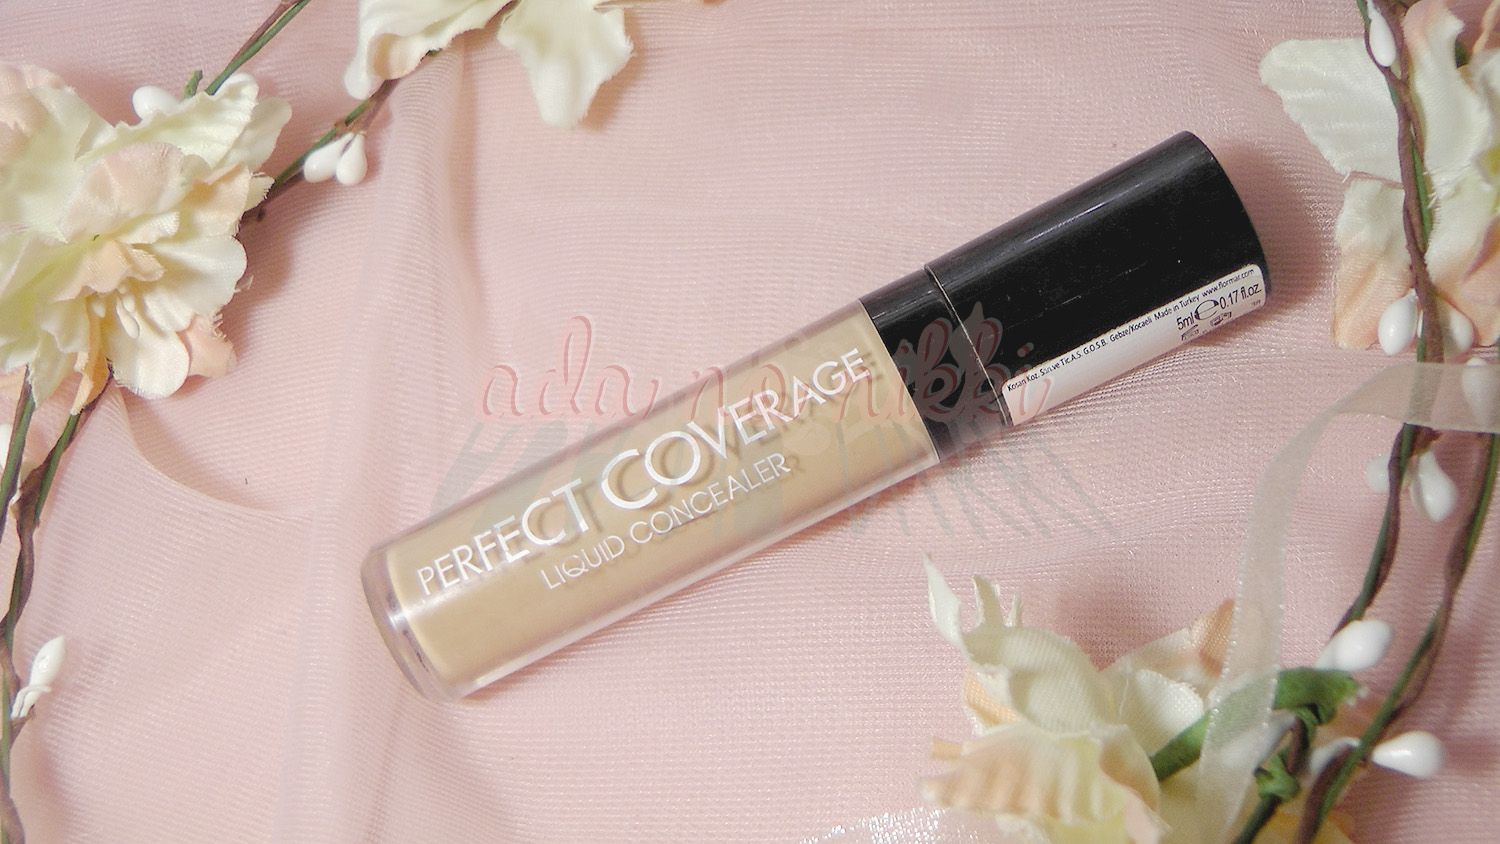 Flormar Perfect Coverage Liquid Concealer